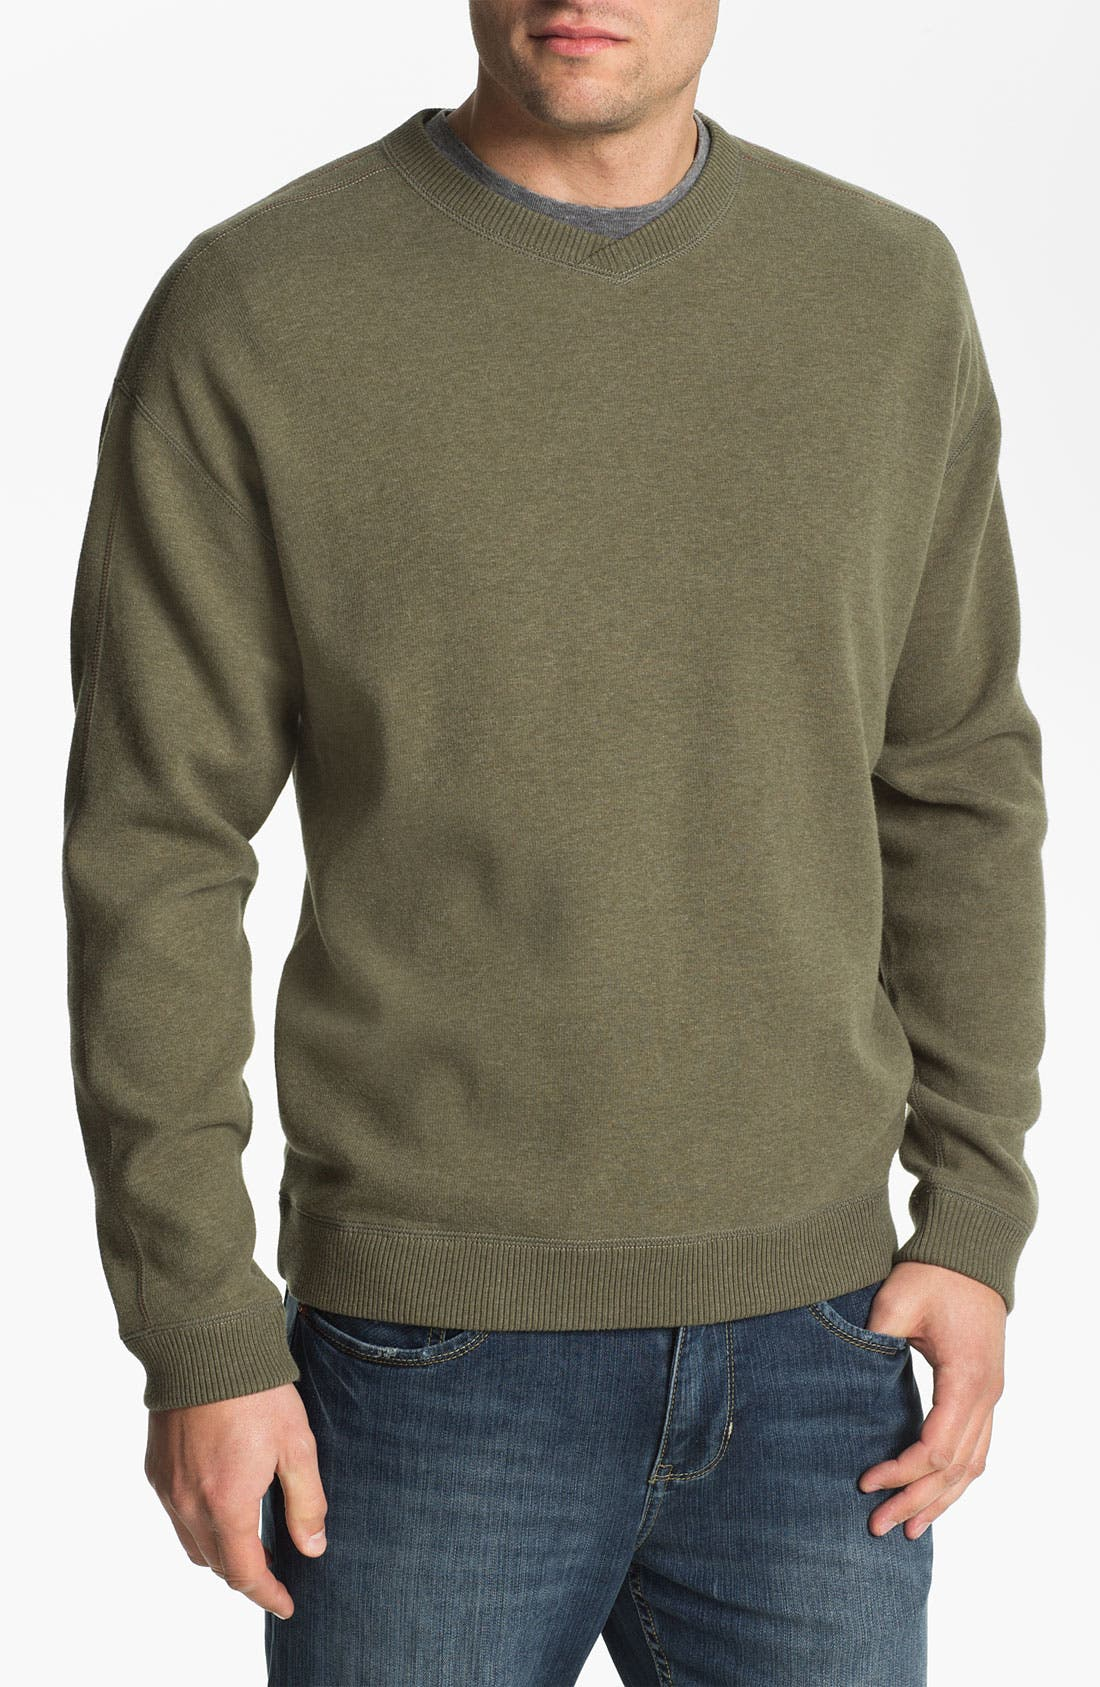 Main Image - Tommy Bahama 'Flip Side Pro' Fleece V-Neck Sweatshirt (Big & Tall)